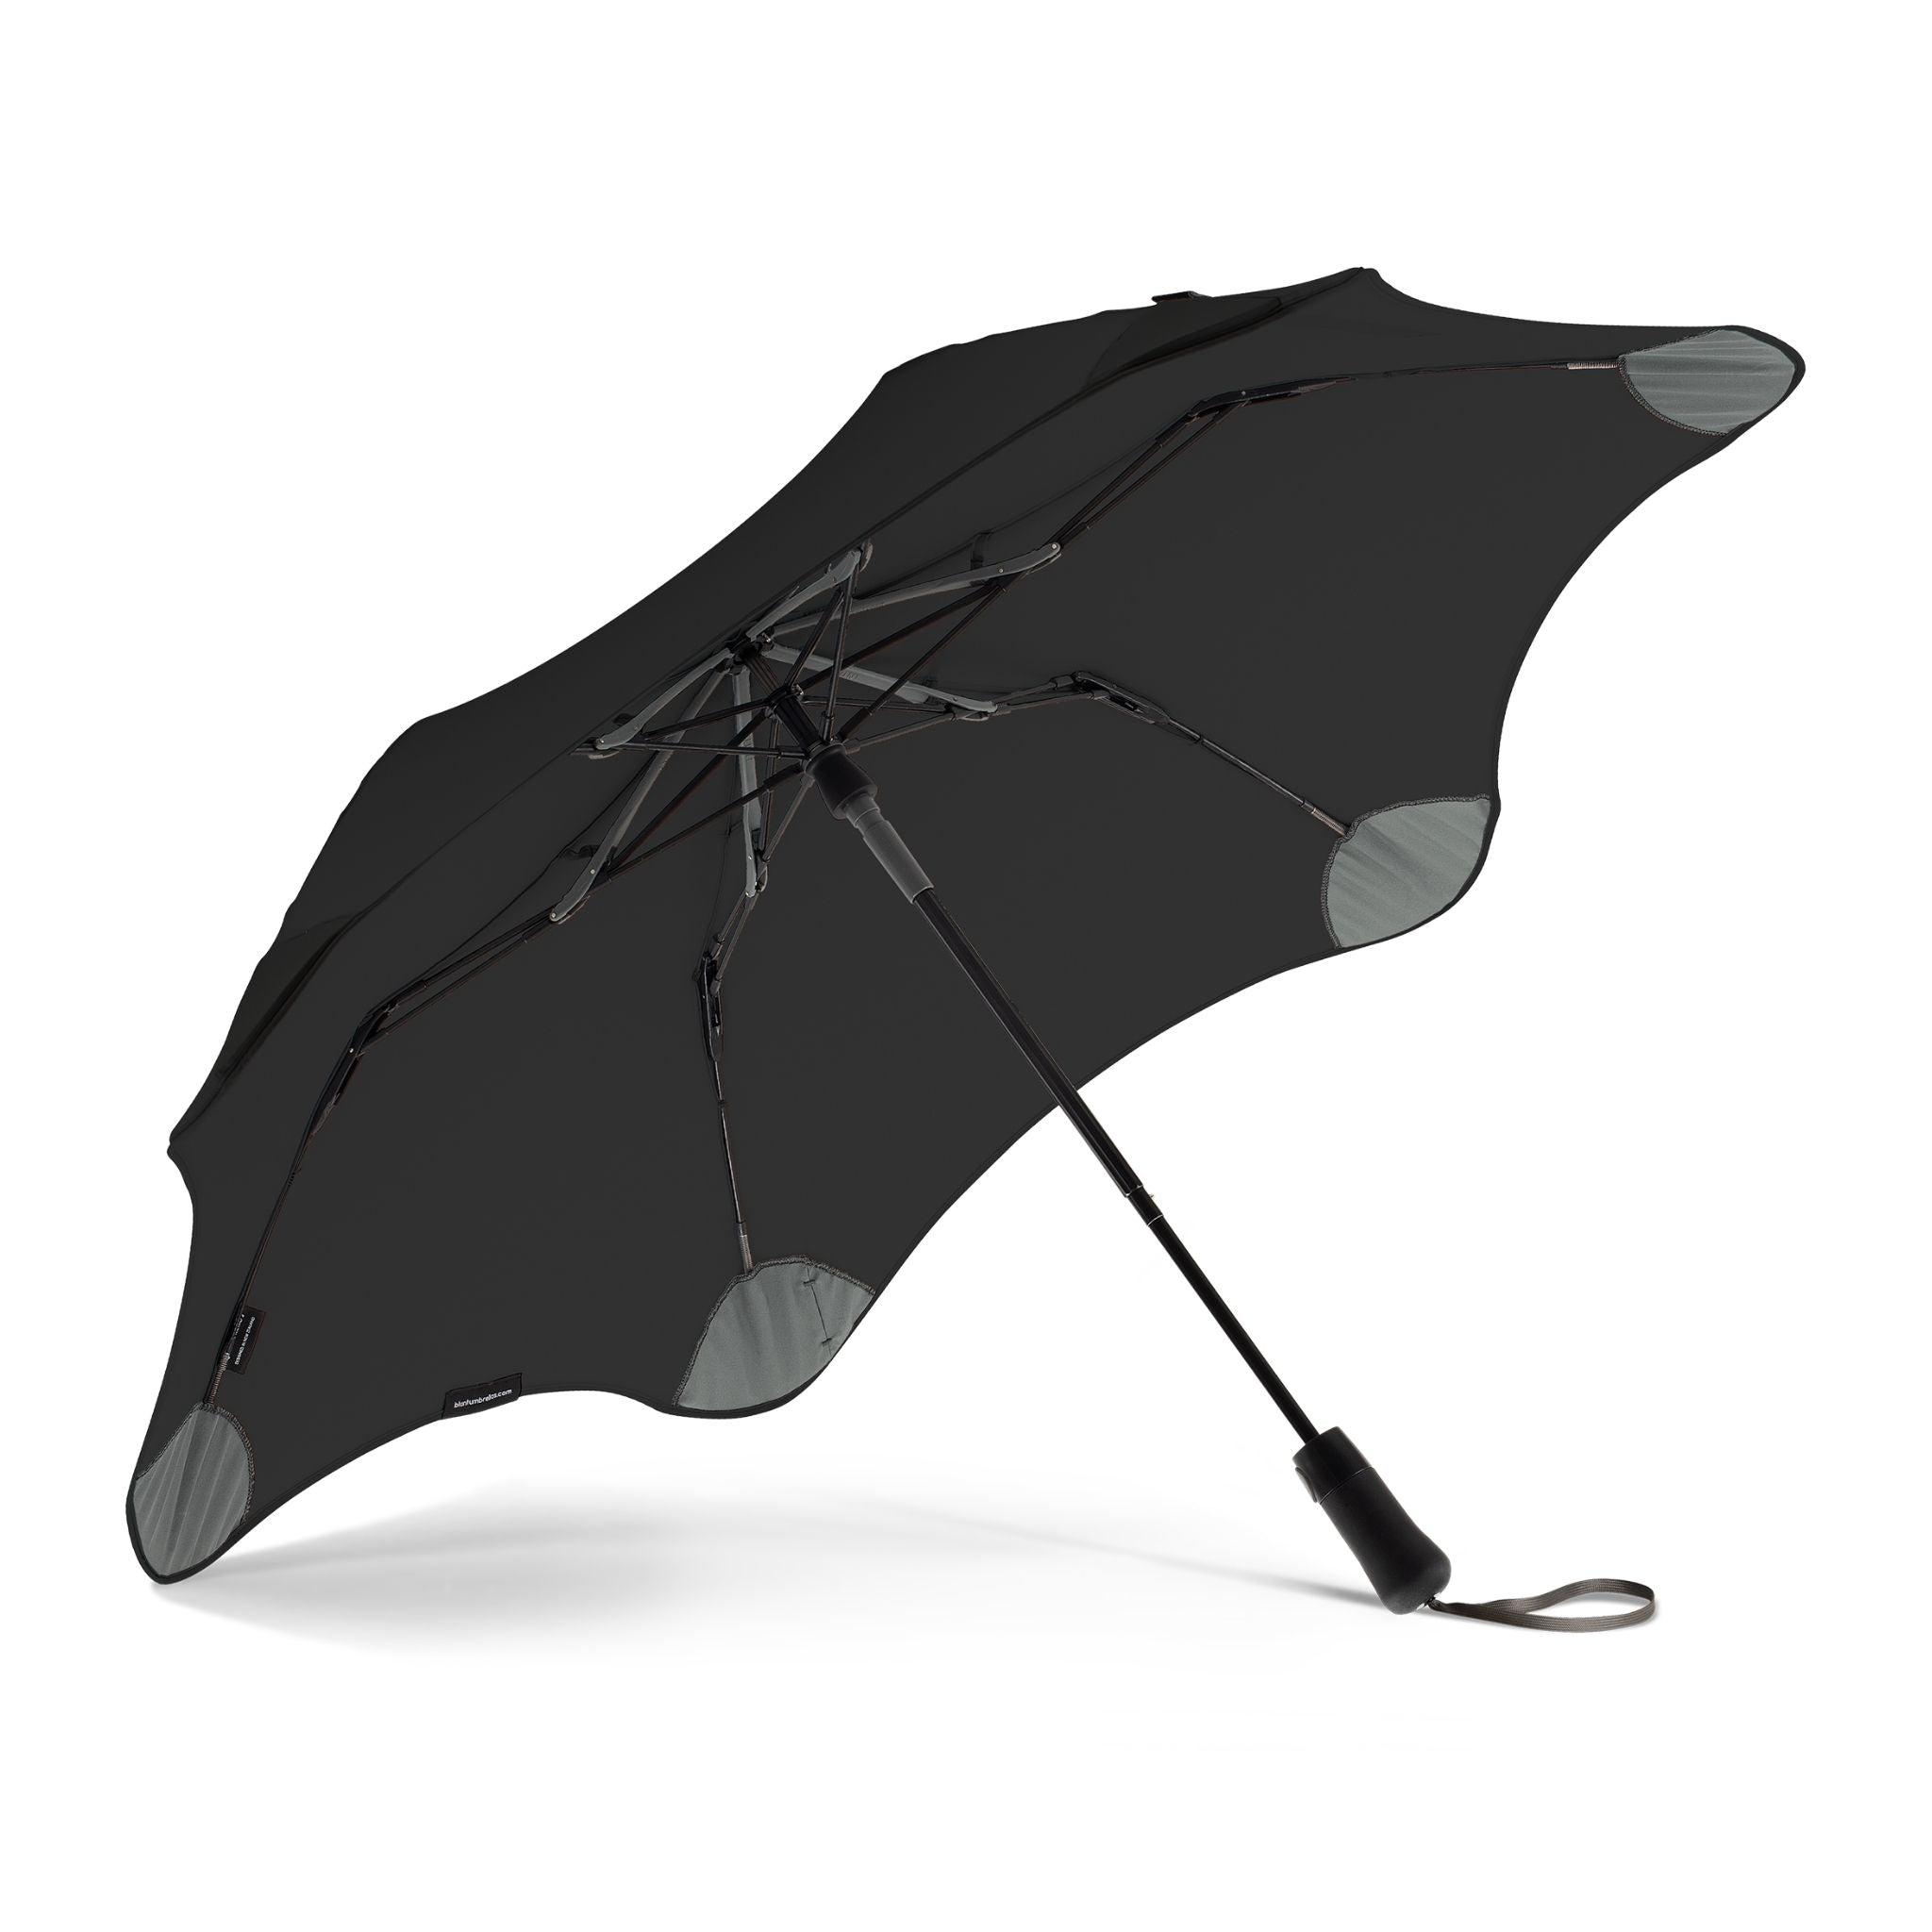 The Metro Compact Umbrella